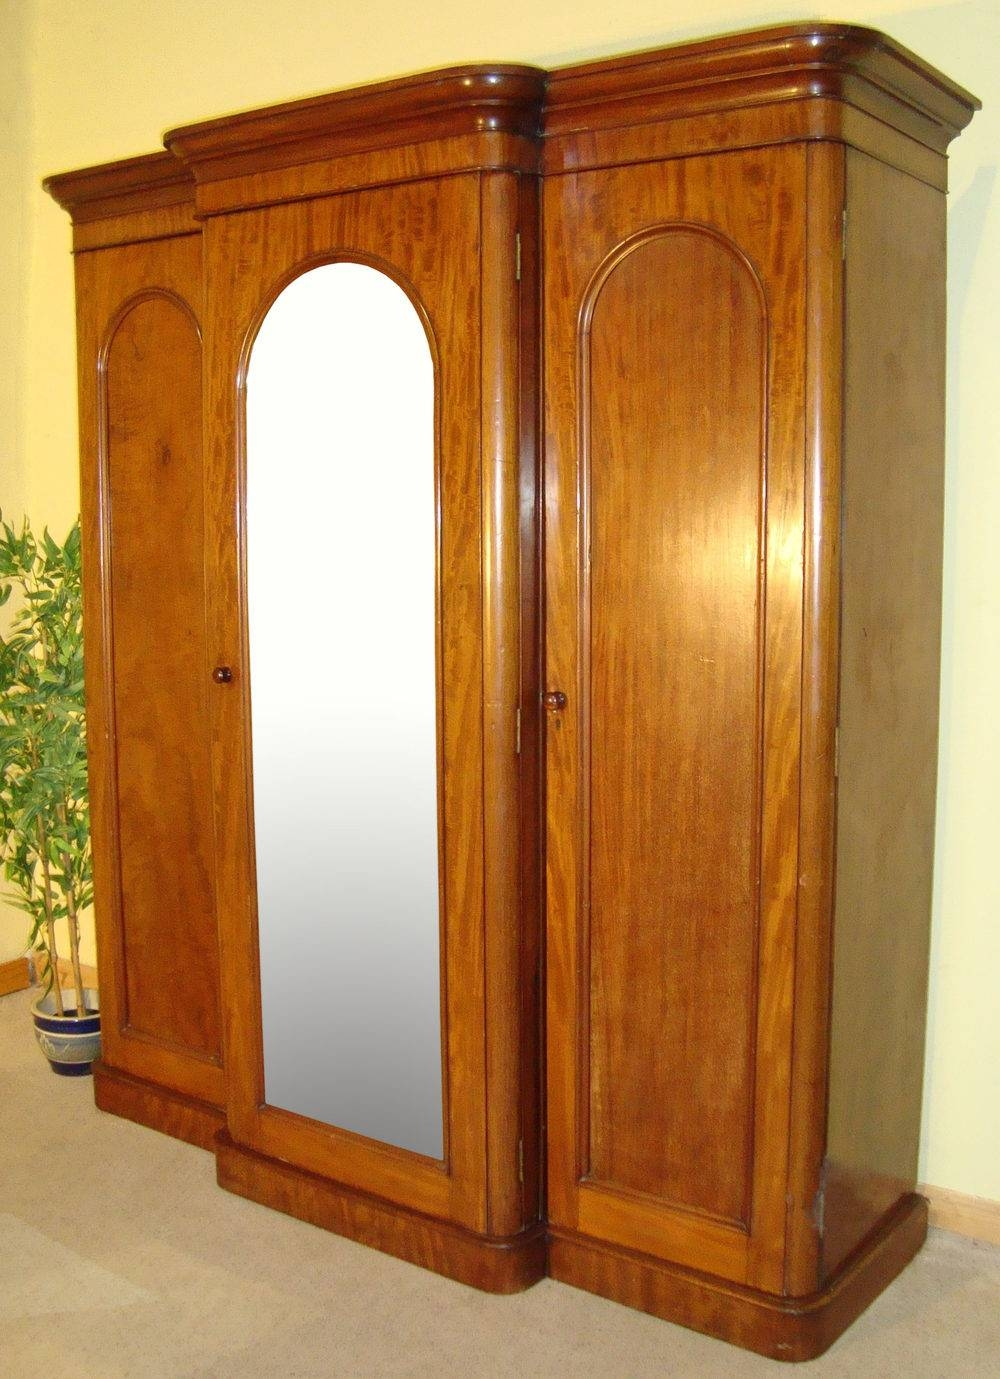 Victorian Mahogany Three Door Breakfront Wardrobe - Antiques Atlas inside Victorian Breakfront Wardrobe (Image 24 of 30)